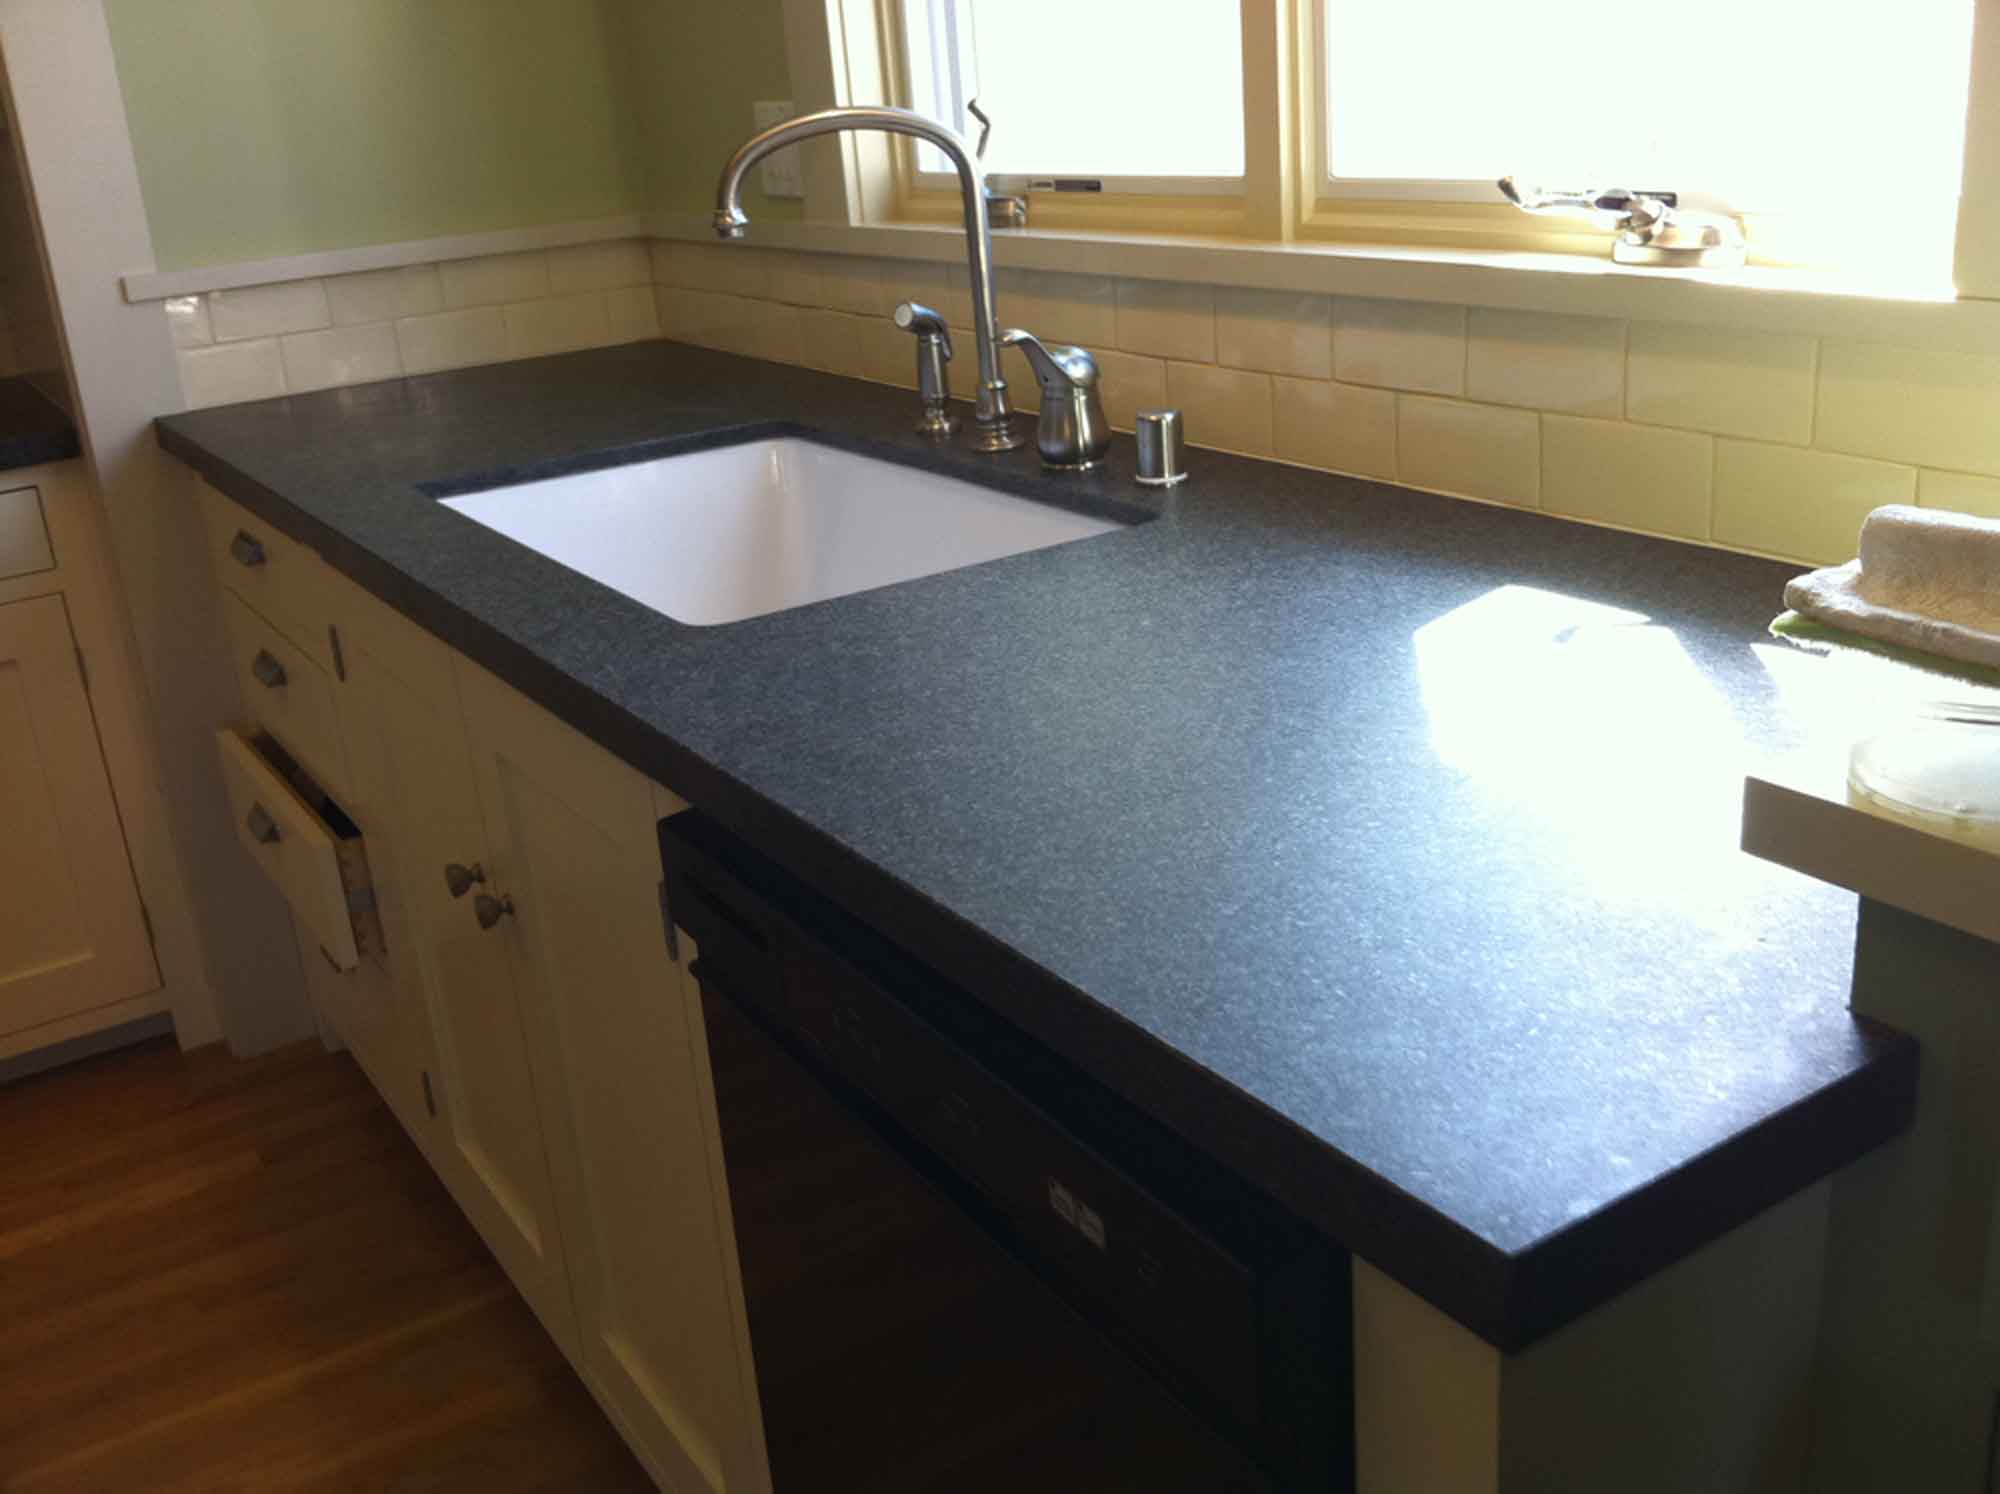 Perfect Granite Countertop Maintenance, Care Of Granite Counters, How To Clean Granite  Countertops, Caring For Granite